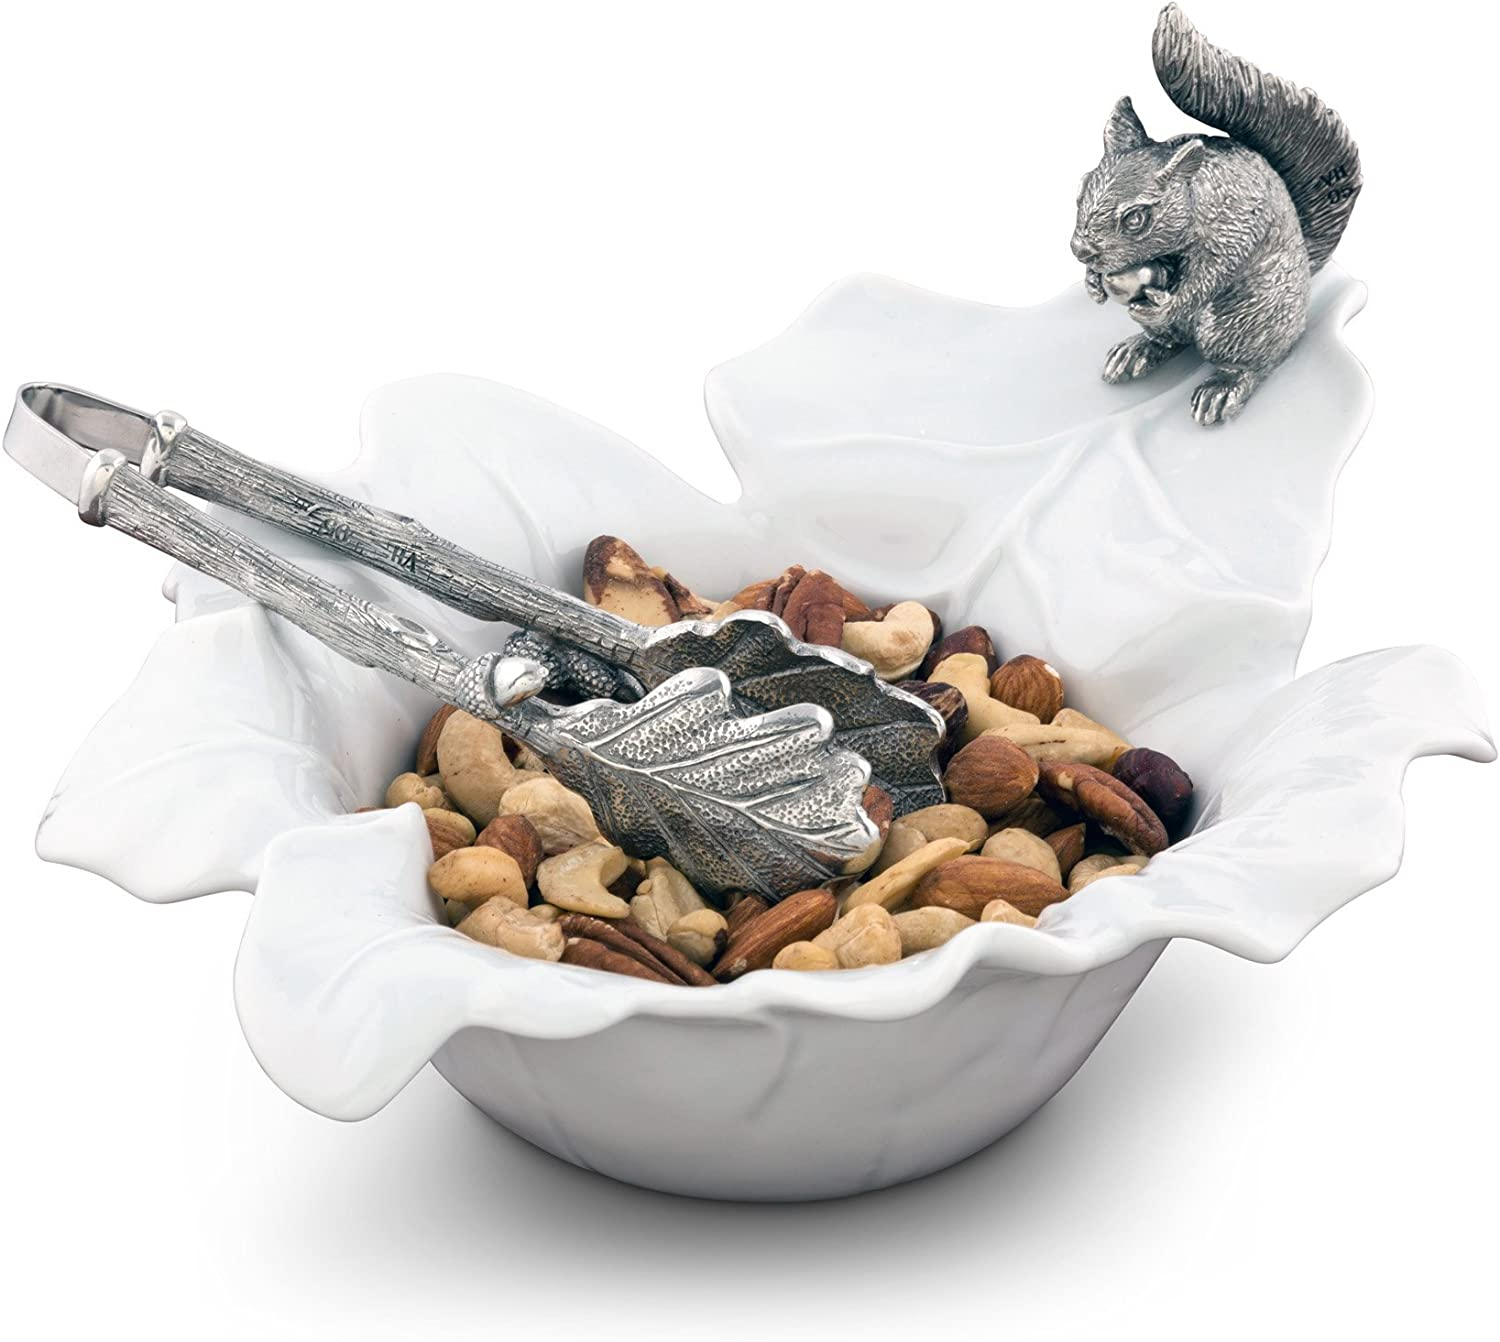 Vagabond House Fine Porcelain Leaf Bowl with Pewter Squirrel 10  x 8  5.5  Tall